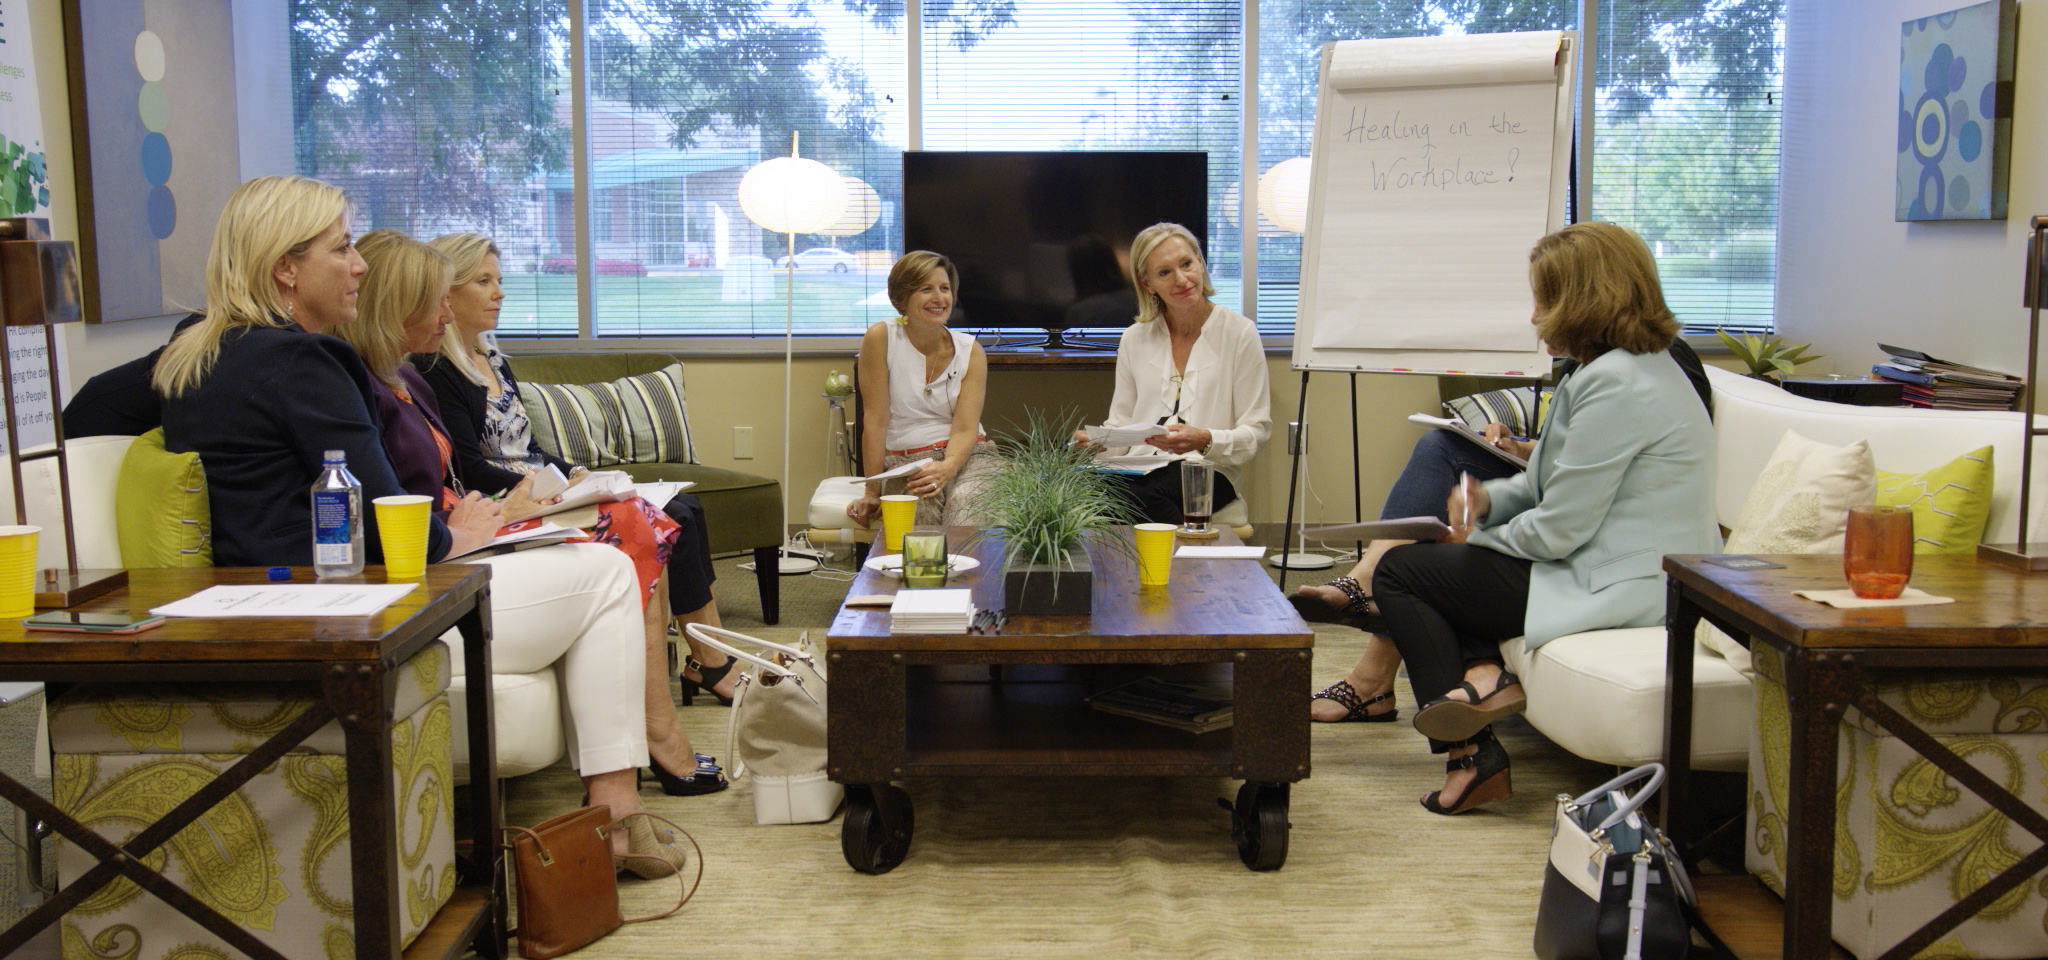 Workplace healing focus group